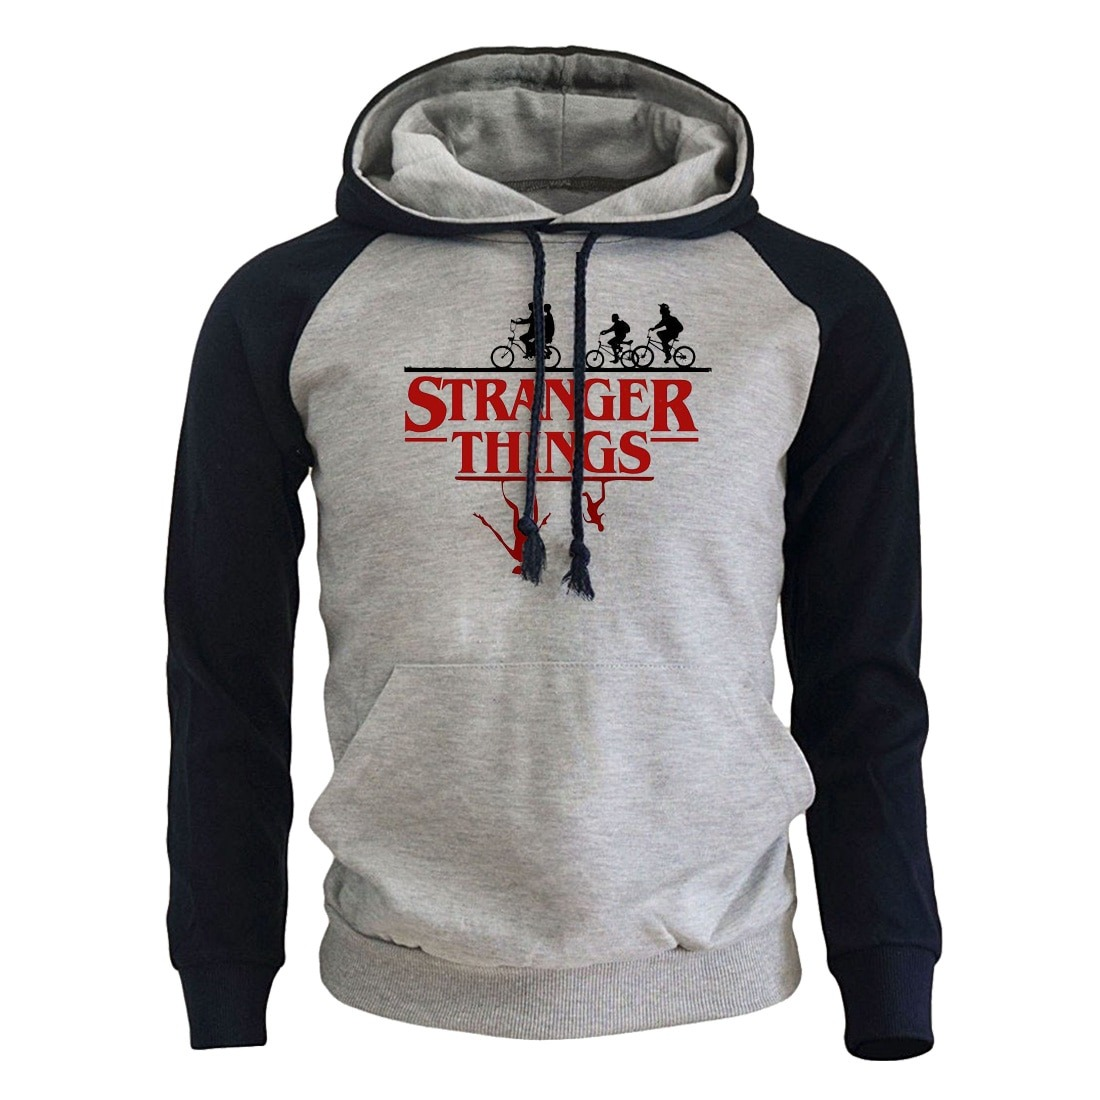 Sudadera con capucha Stranger Things Casual 2020 3